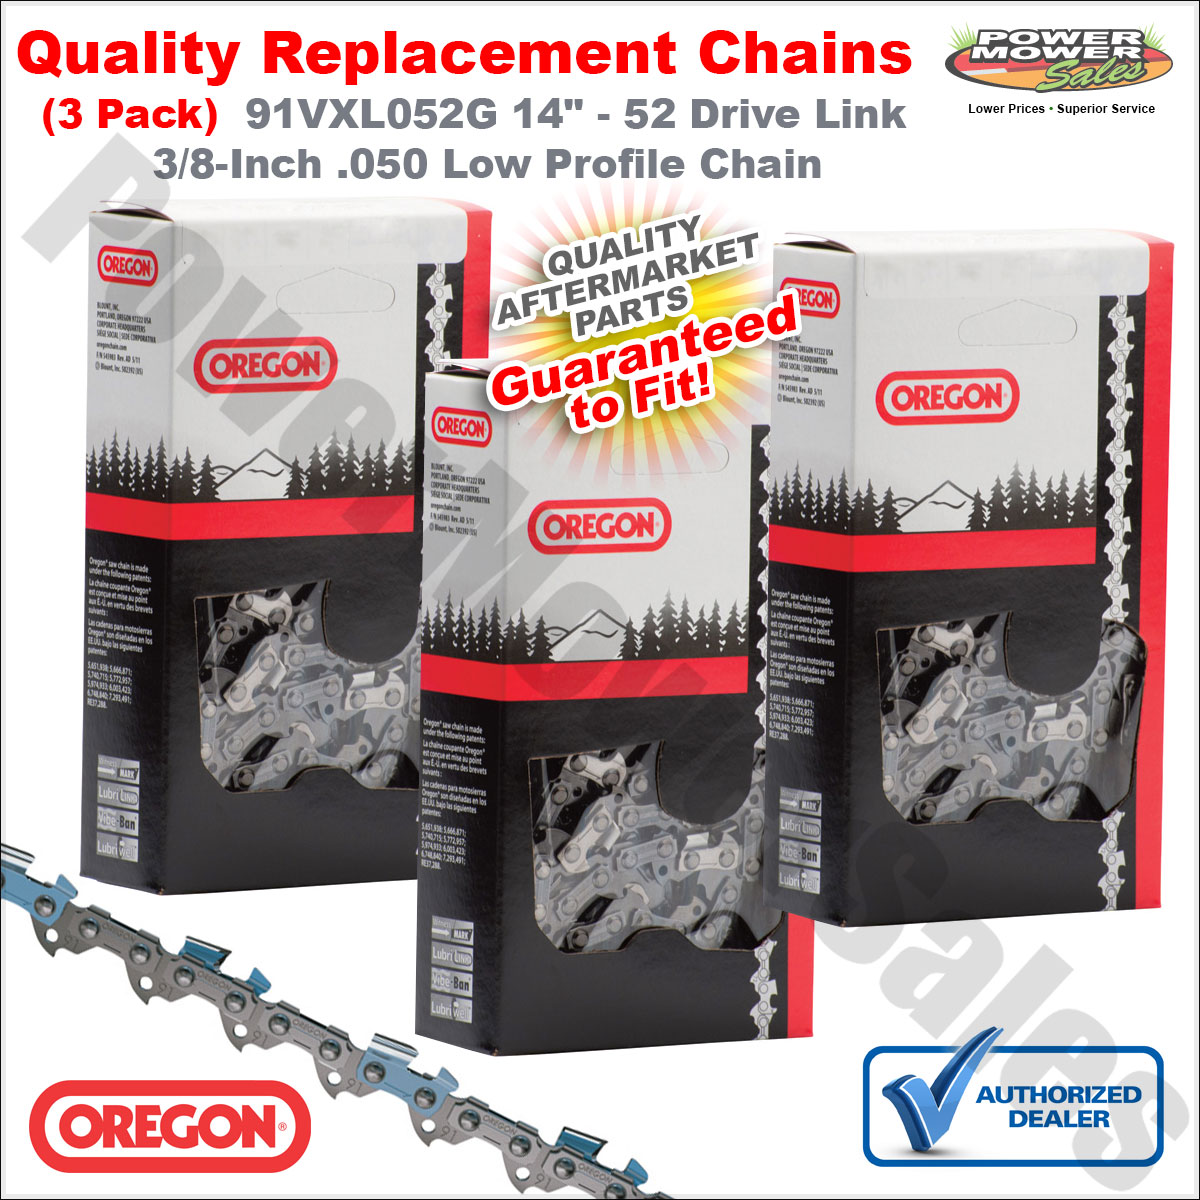 1.3mm Gauge x2 Replacement 14 Chain For Tanaka Chainsaws 52 Drive Link .050